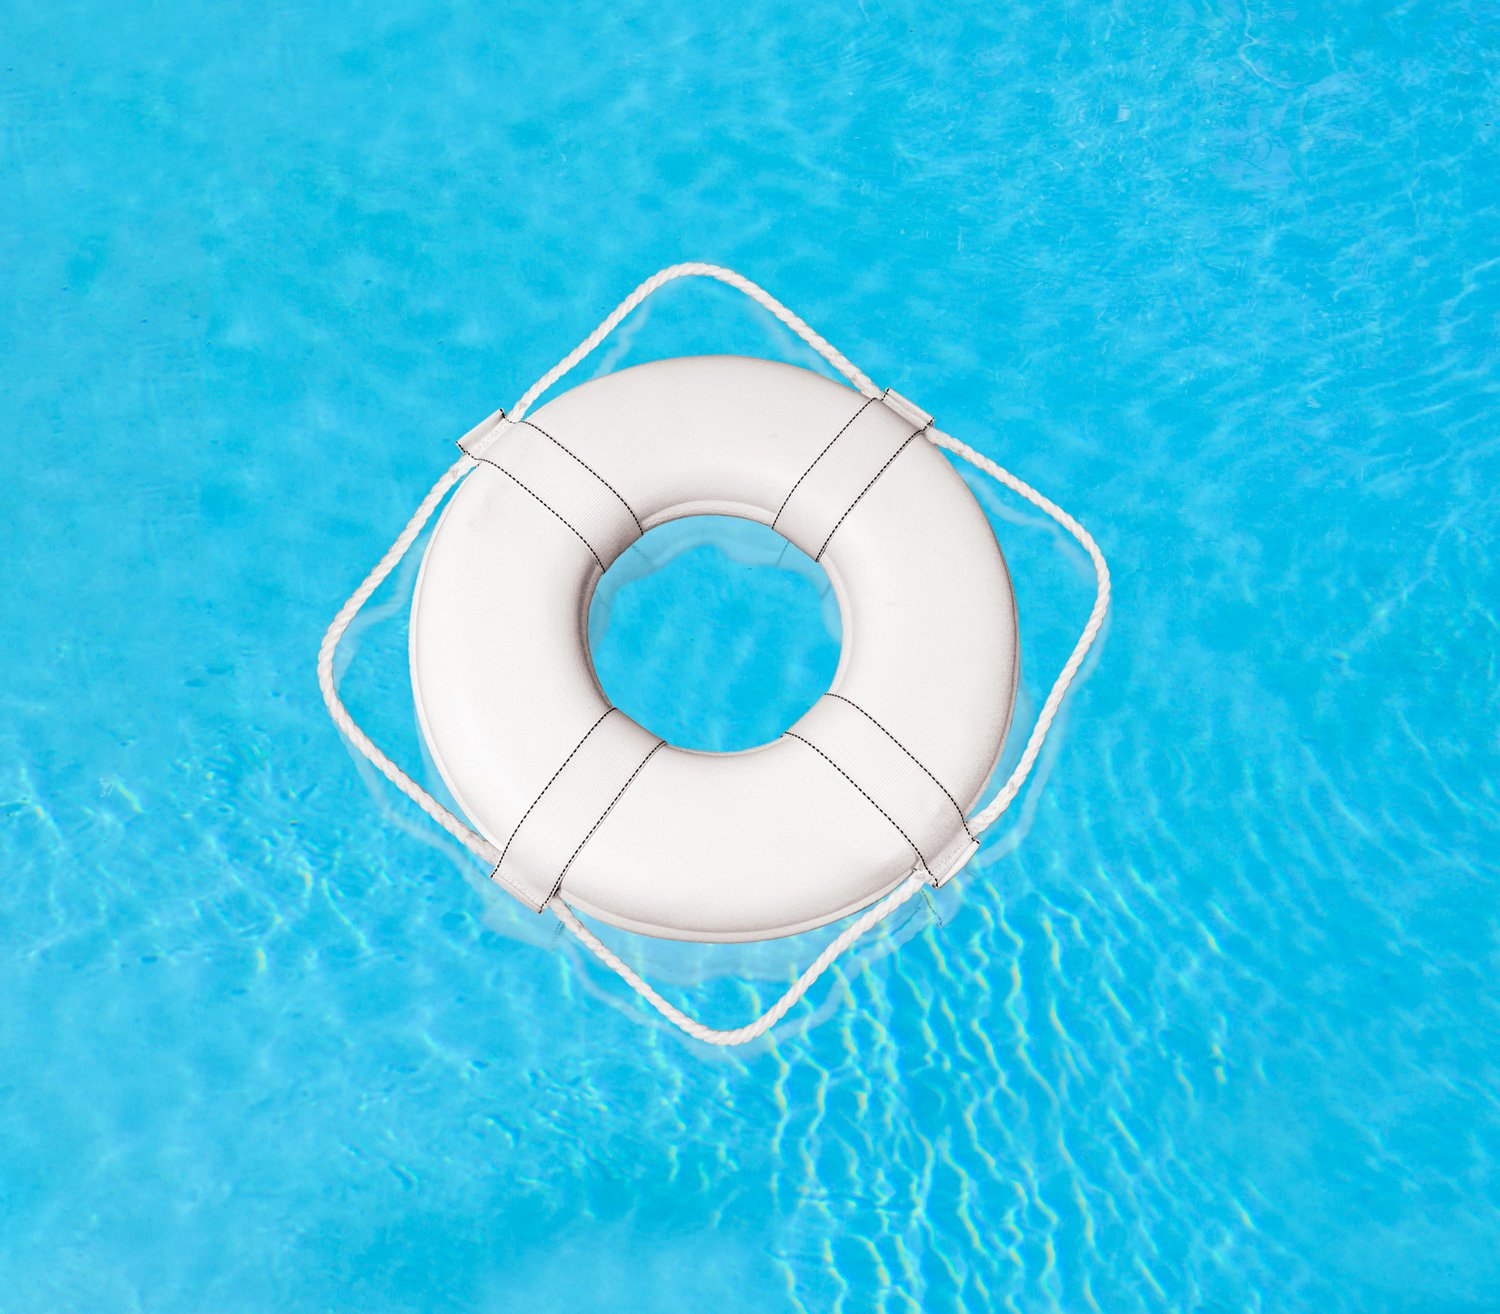 Poolmaster 55551 Coast Guard Approved Ring Buoy, 30'' Diameter by Poolmaster (Image #3)